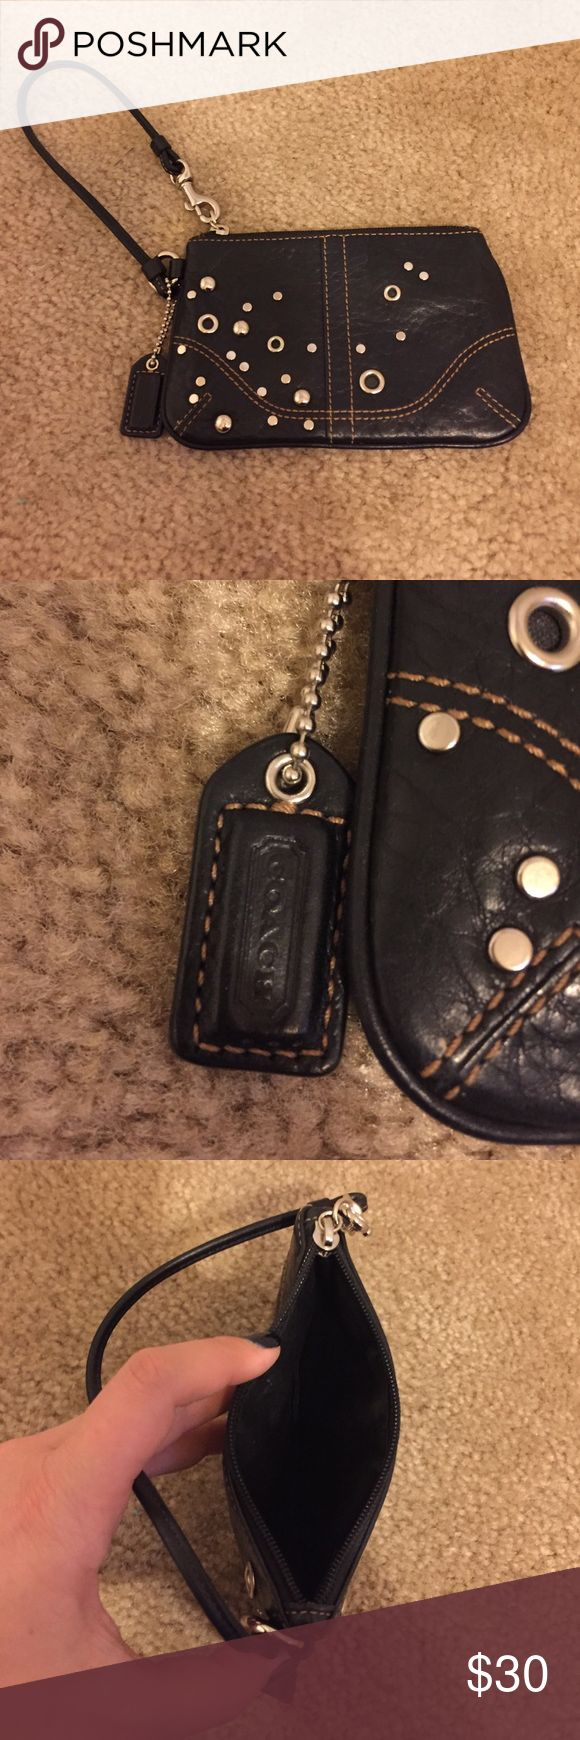 Black Studded Coach Wristlet Excellent/Barely Used Black Leather and Studs Coach Wristlet Coach Bags Clutches & Wristlets